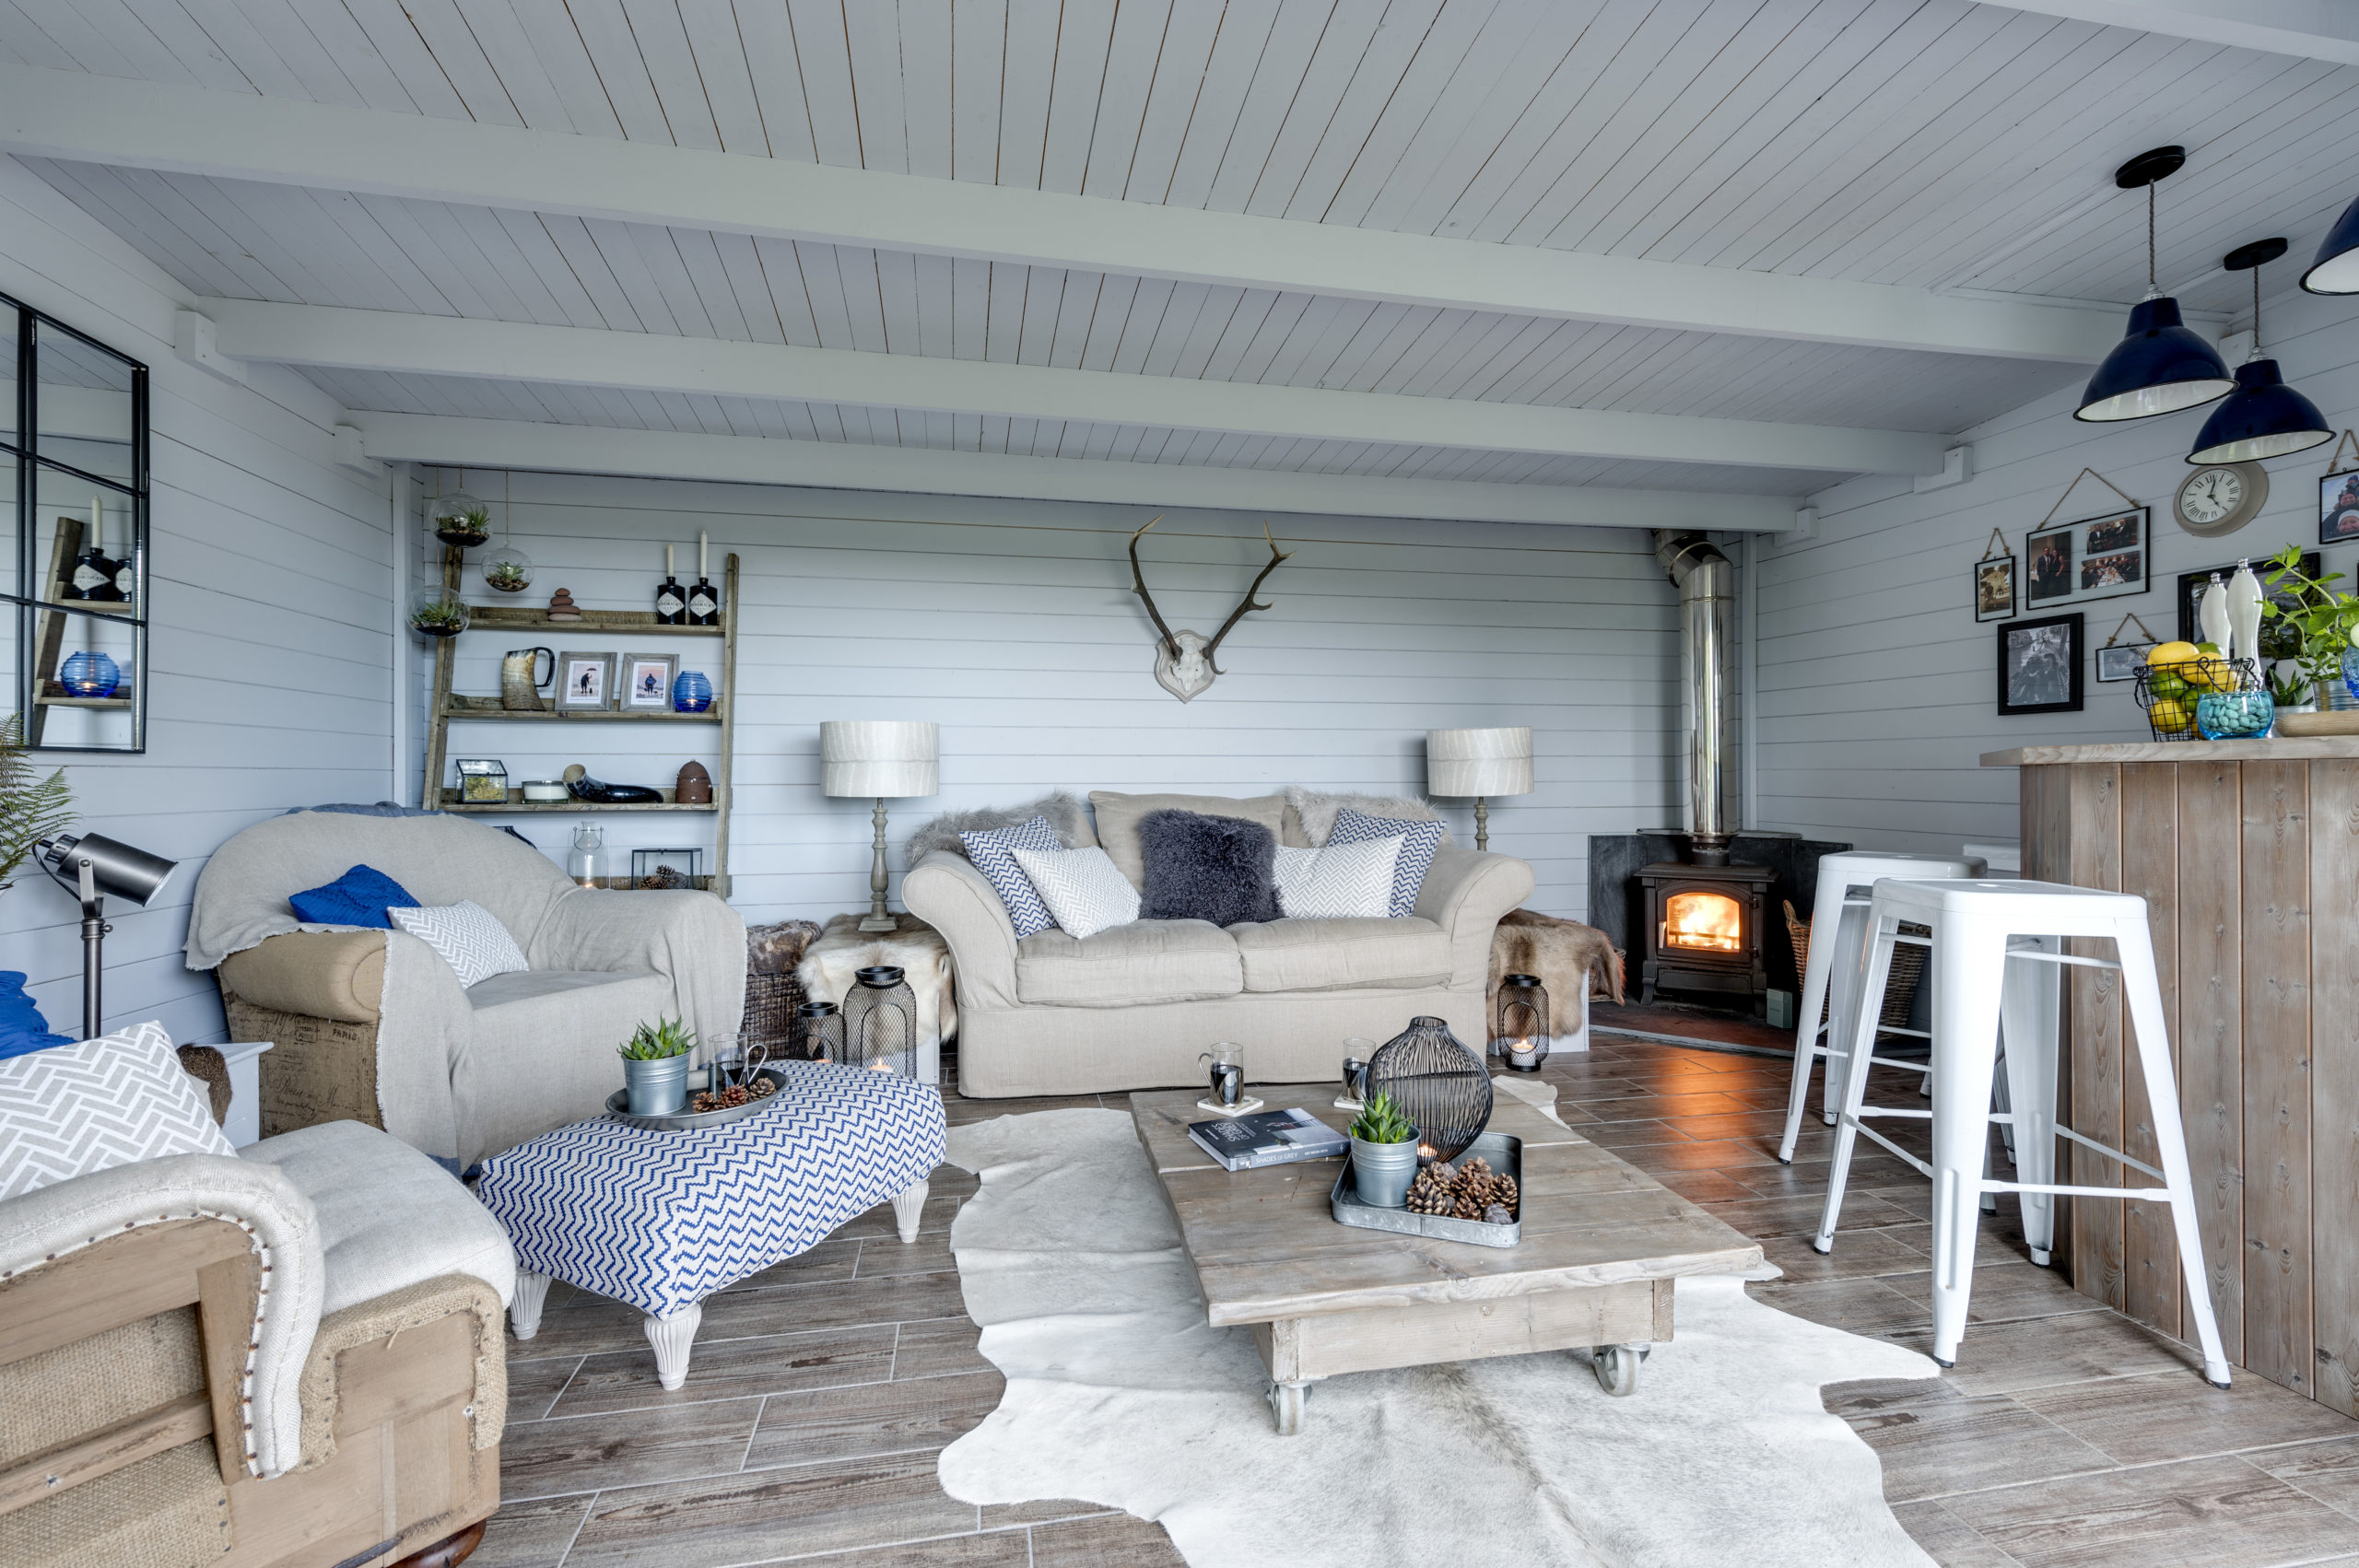 Outdoor kitchen and scandi style summerhouse designed by Amelia Wilson